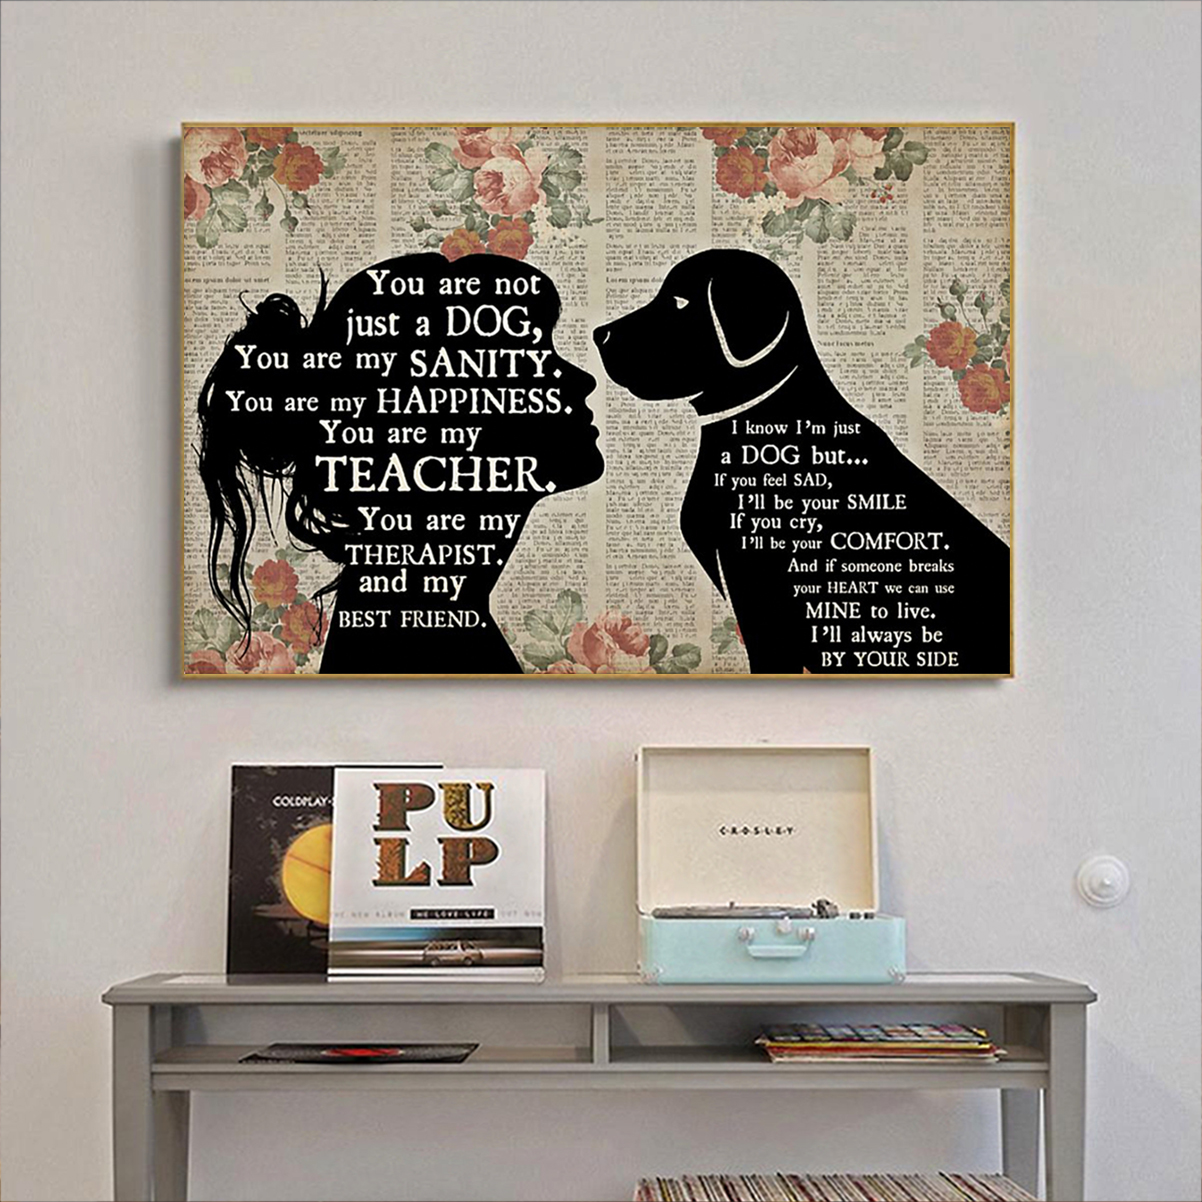 Girl and dog therapist you are not just a dog poster A2